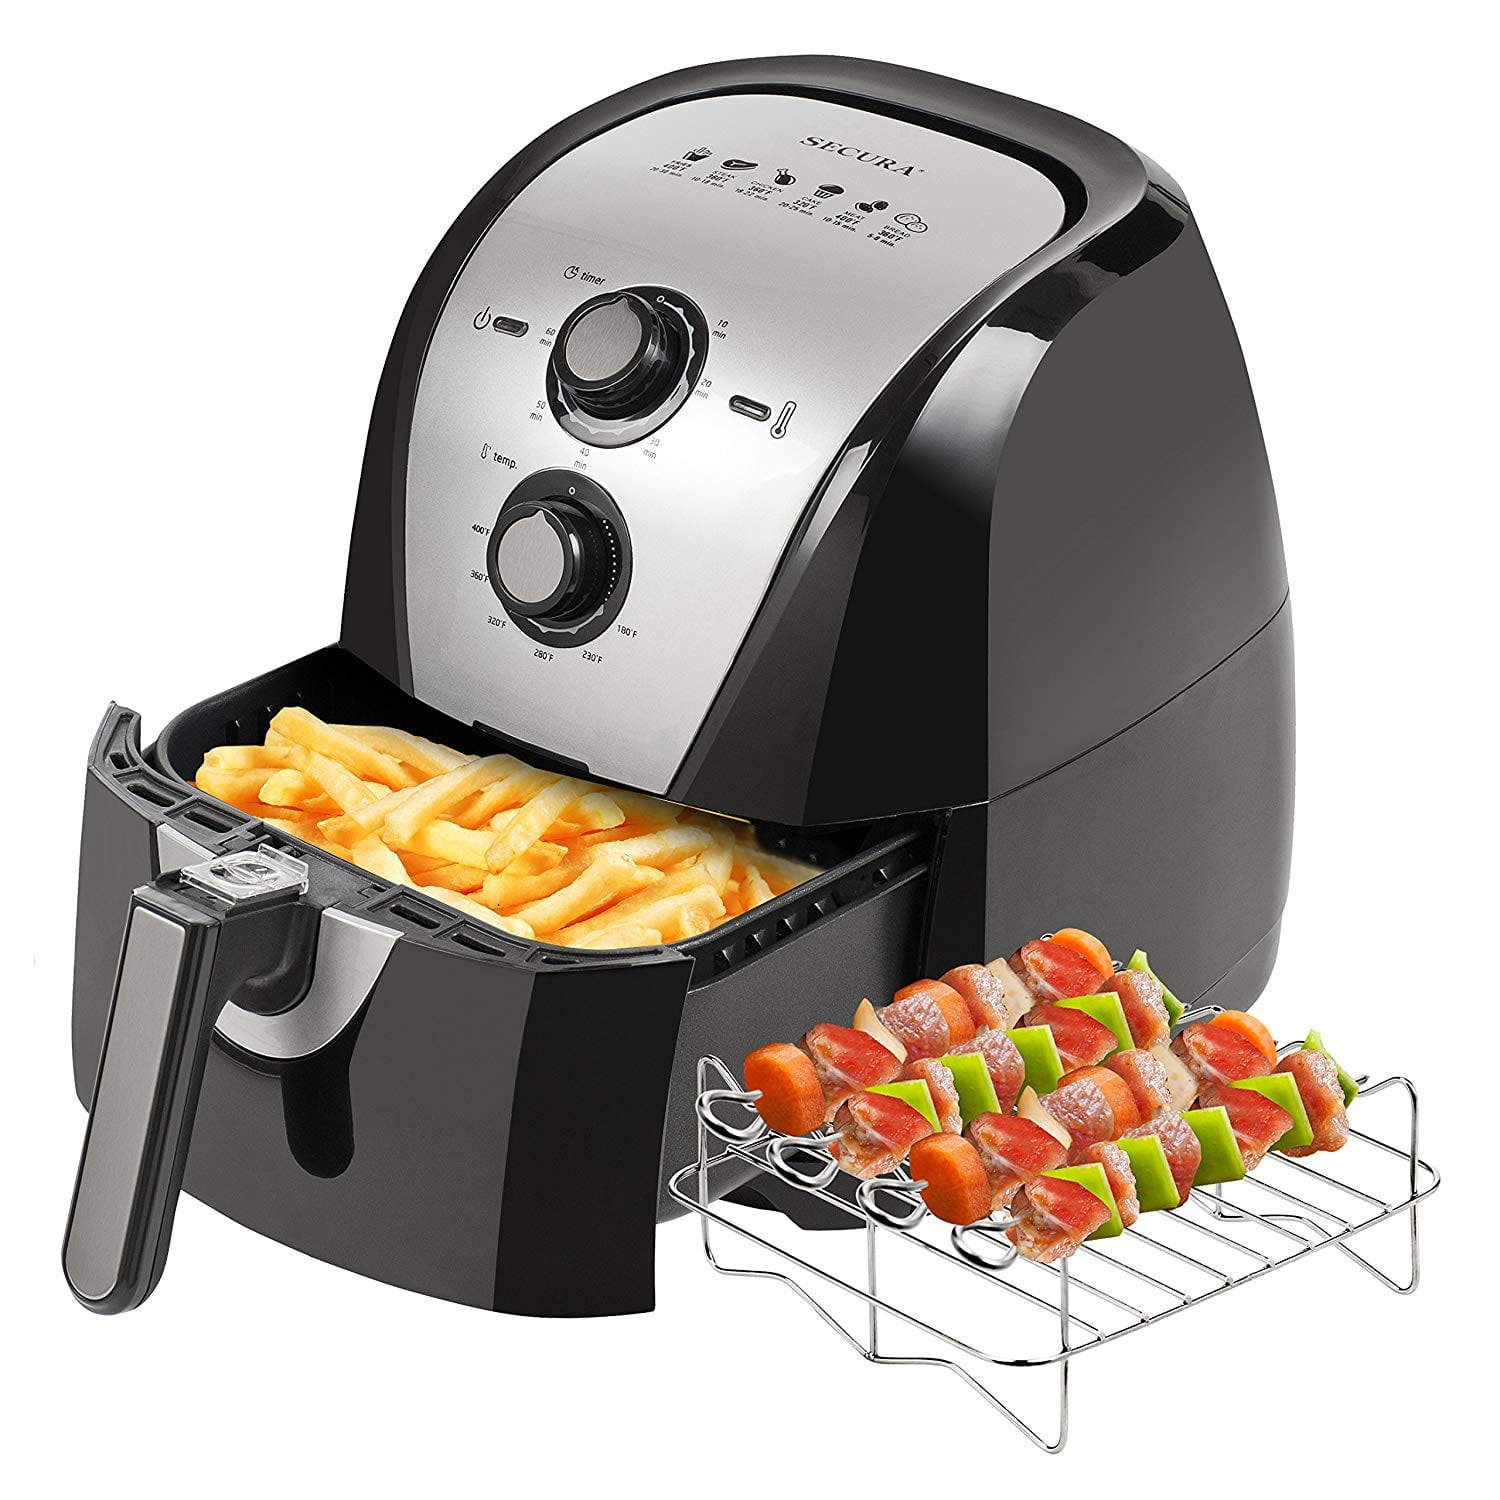 Secura Electric Extra Large Capacity Hot Air Fryer with Skewers and Recipes (5.3Qt)